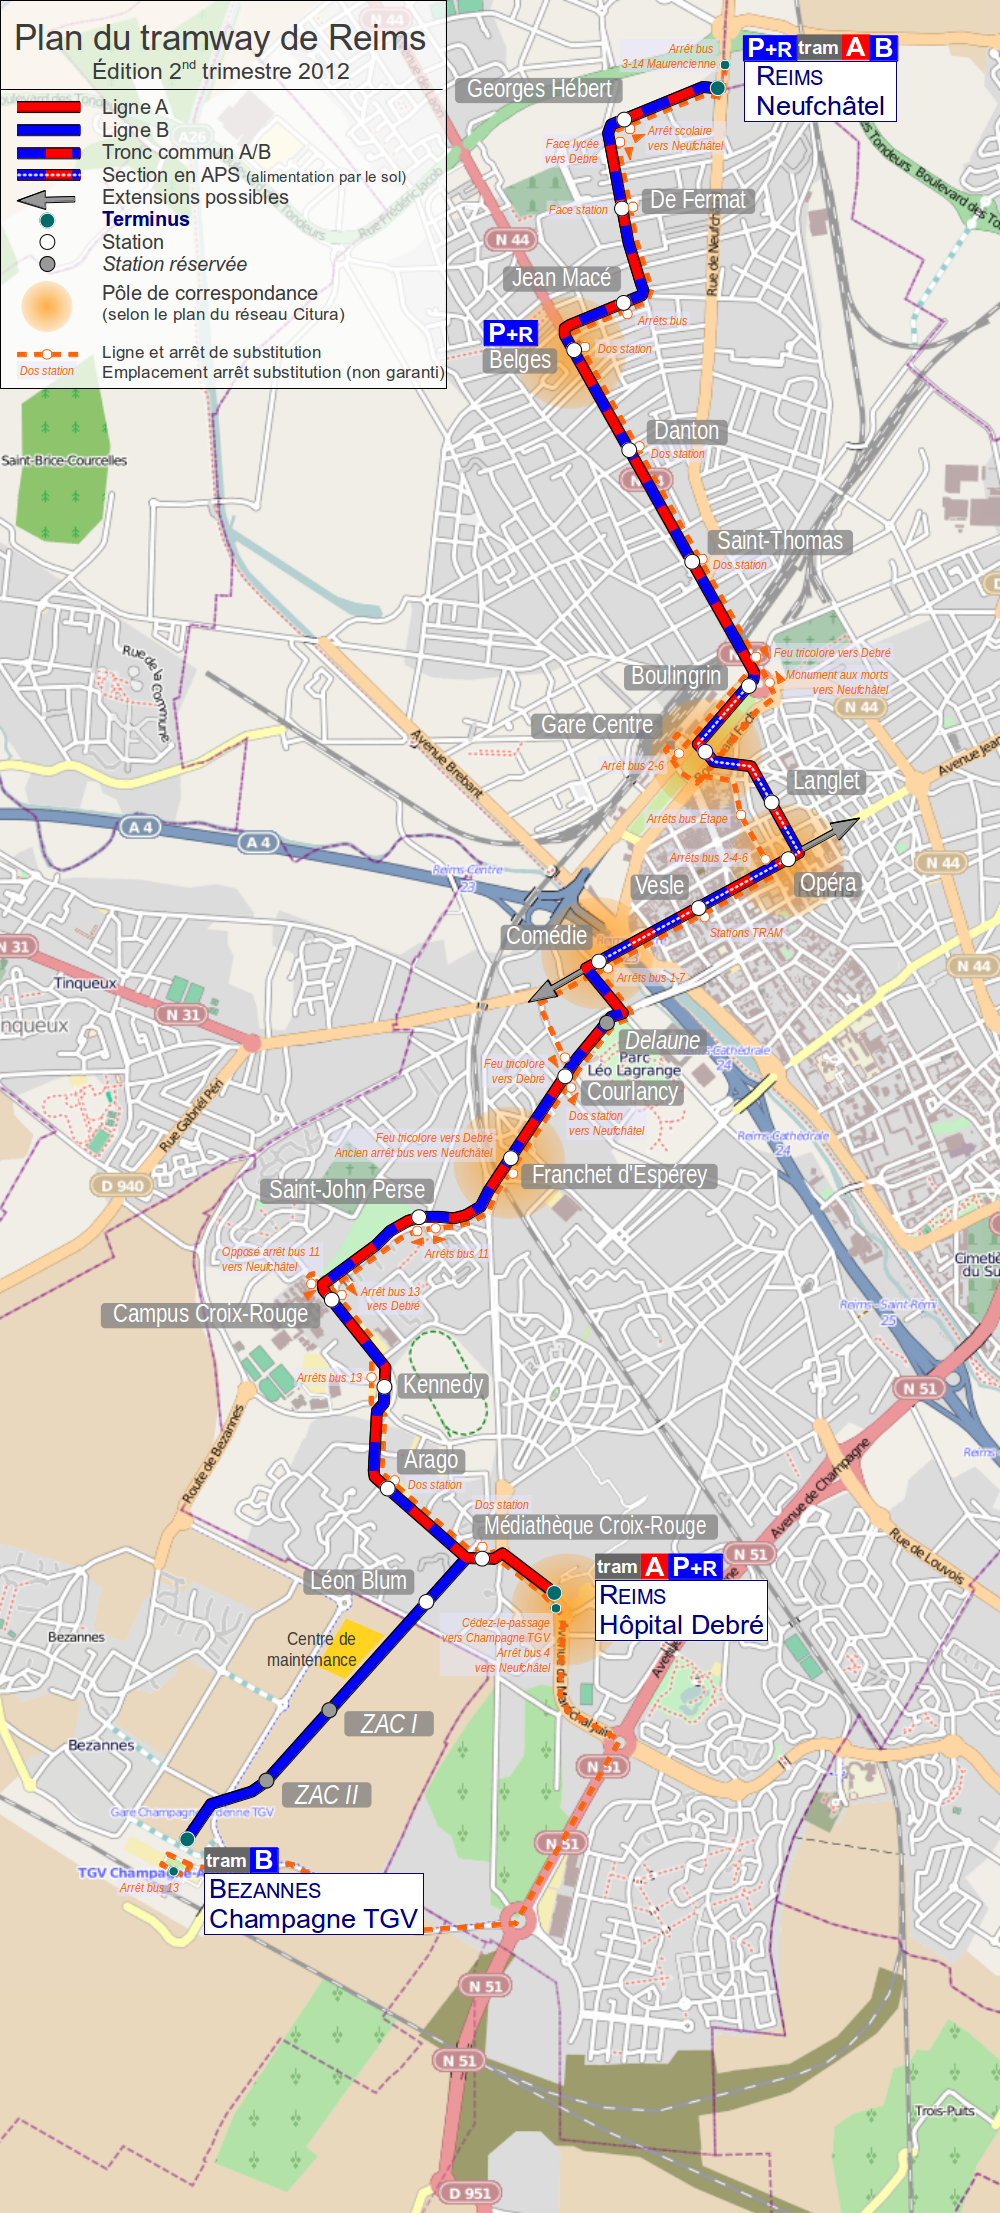 Datei:Plan tramway reims.png – Wikipedia